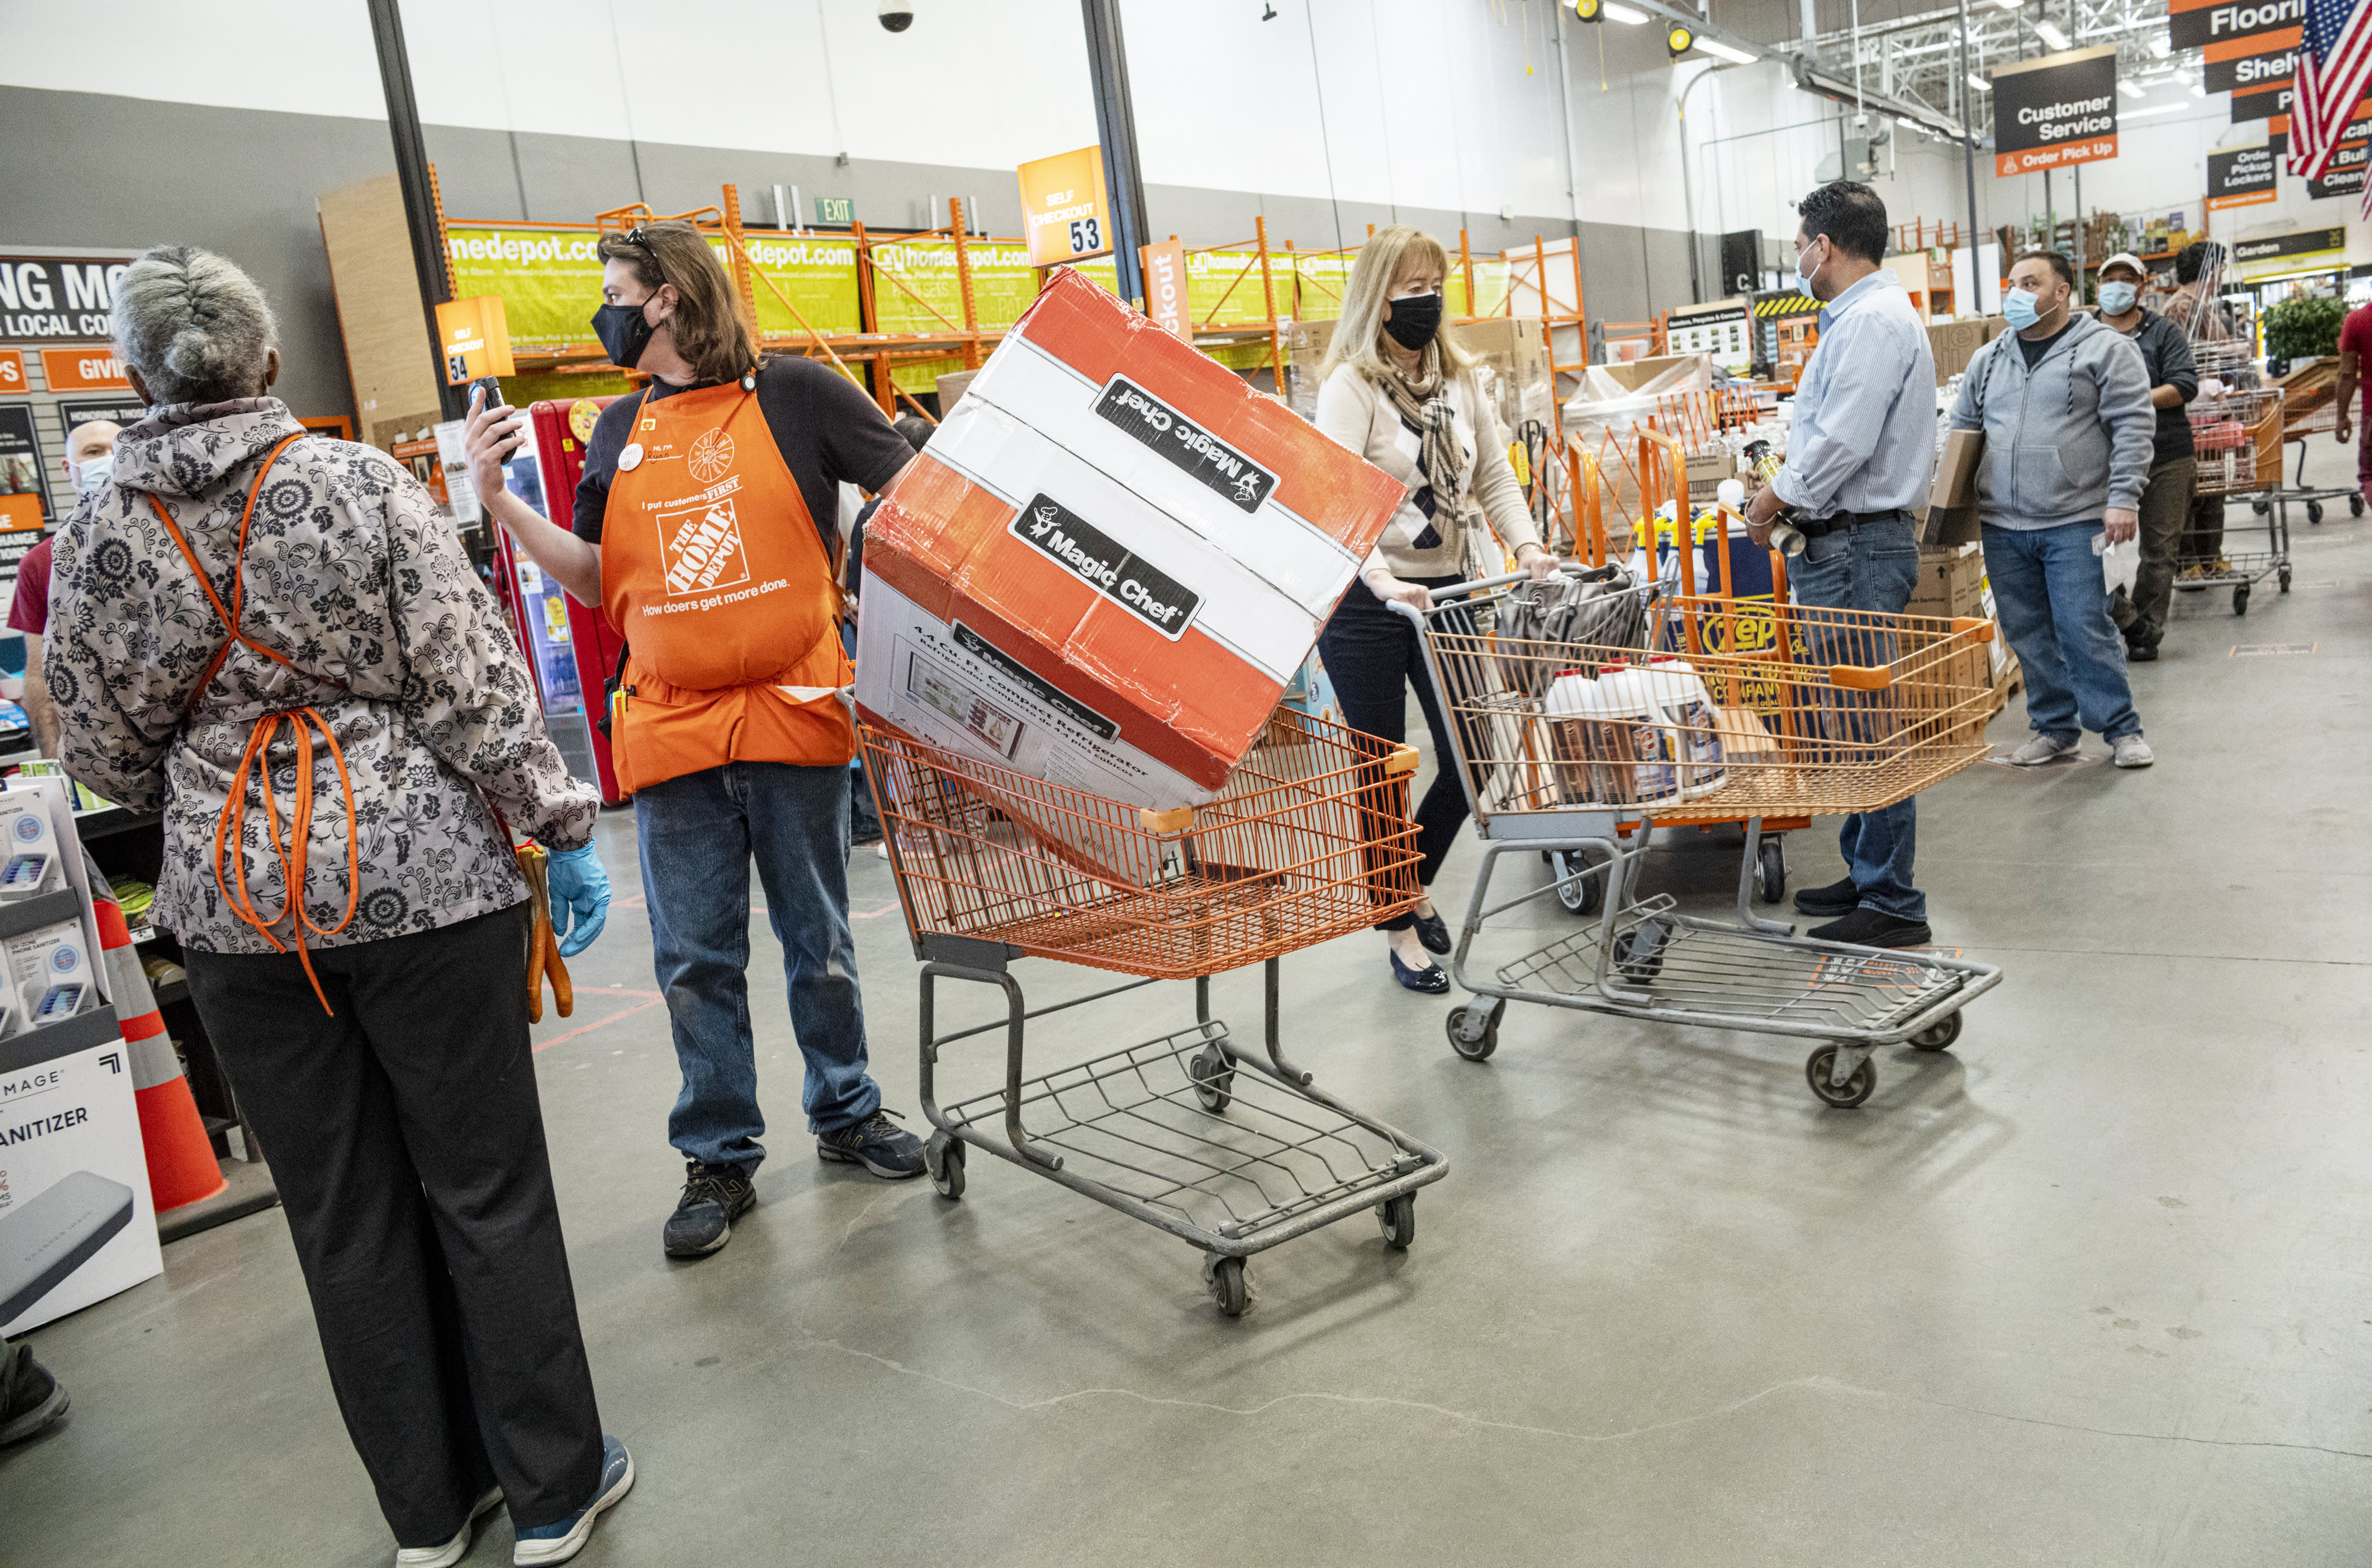 Home Depot is set to report earnings before the bell